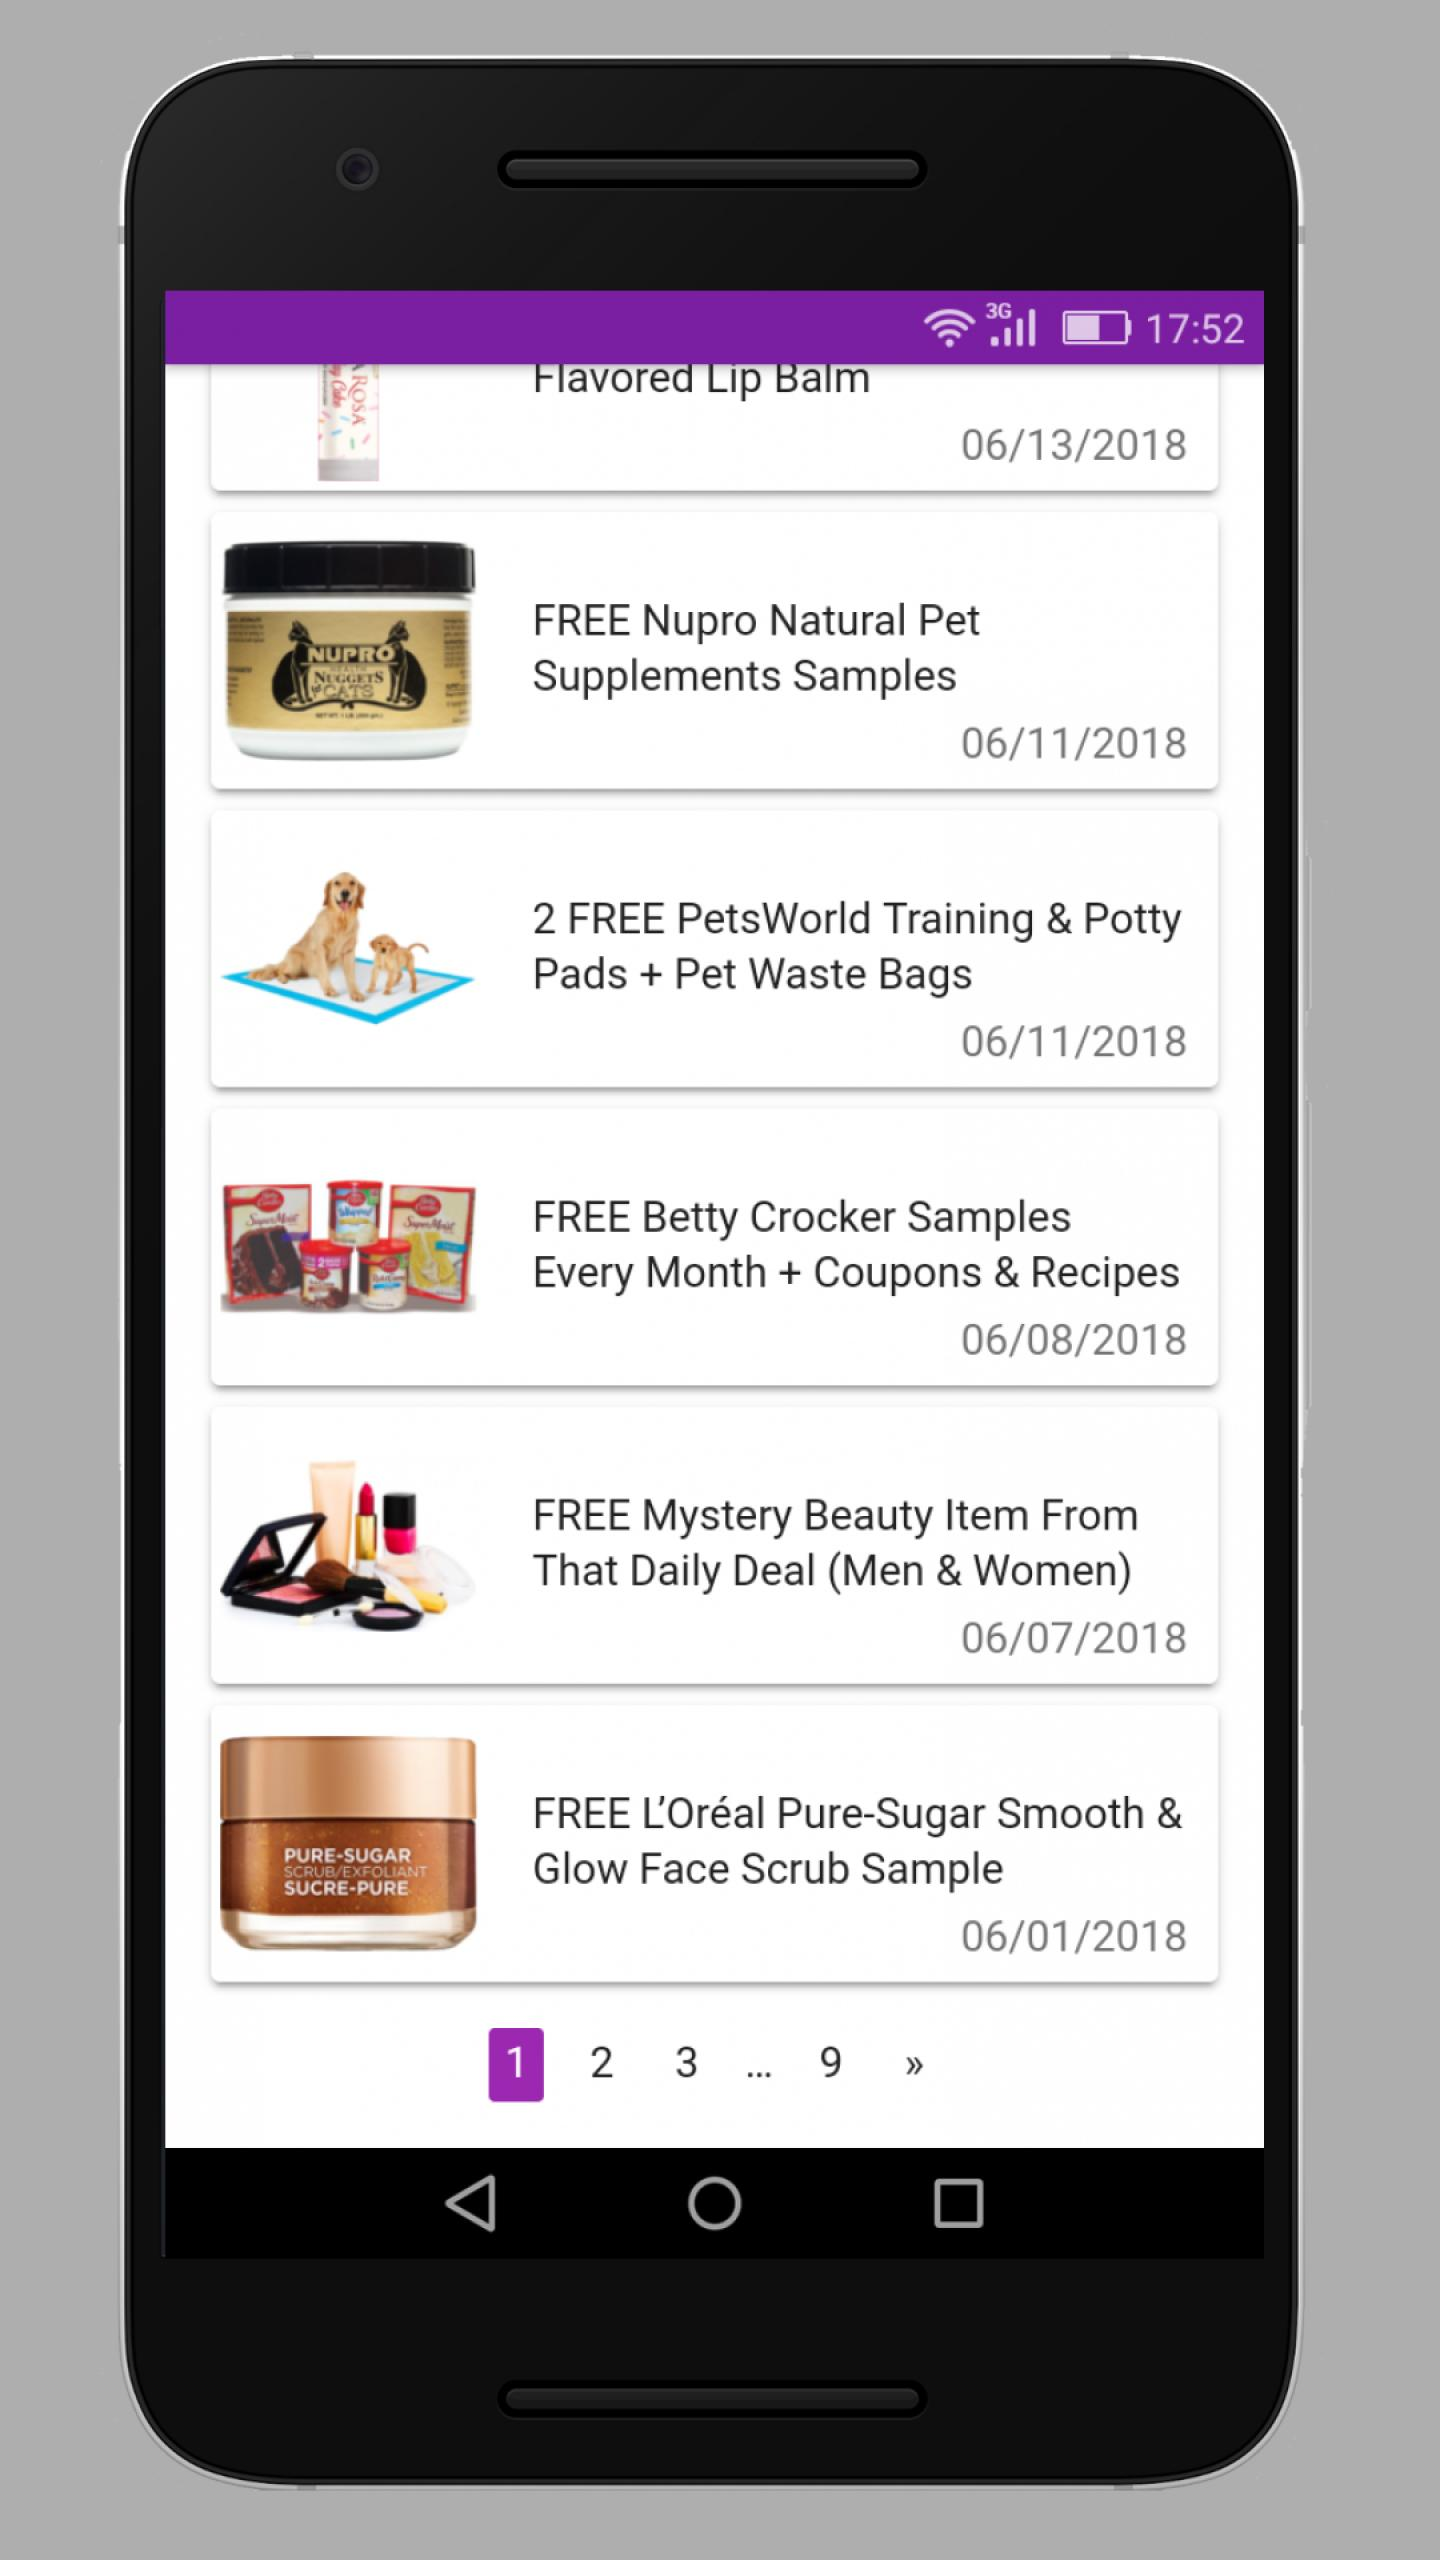 🎁 FREE Stuff, FREE Samples, Freebies by Mail 📫 for Android